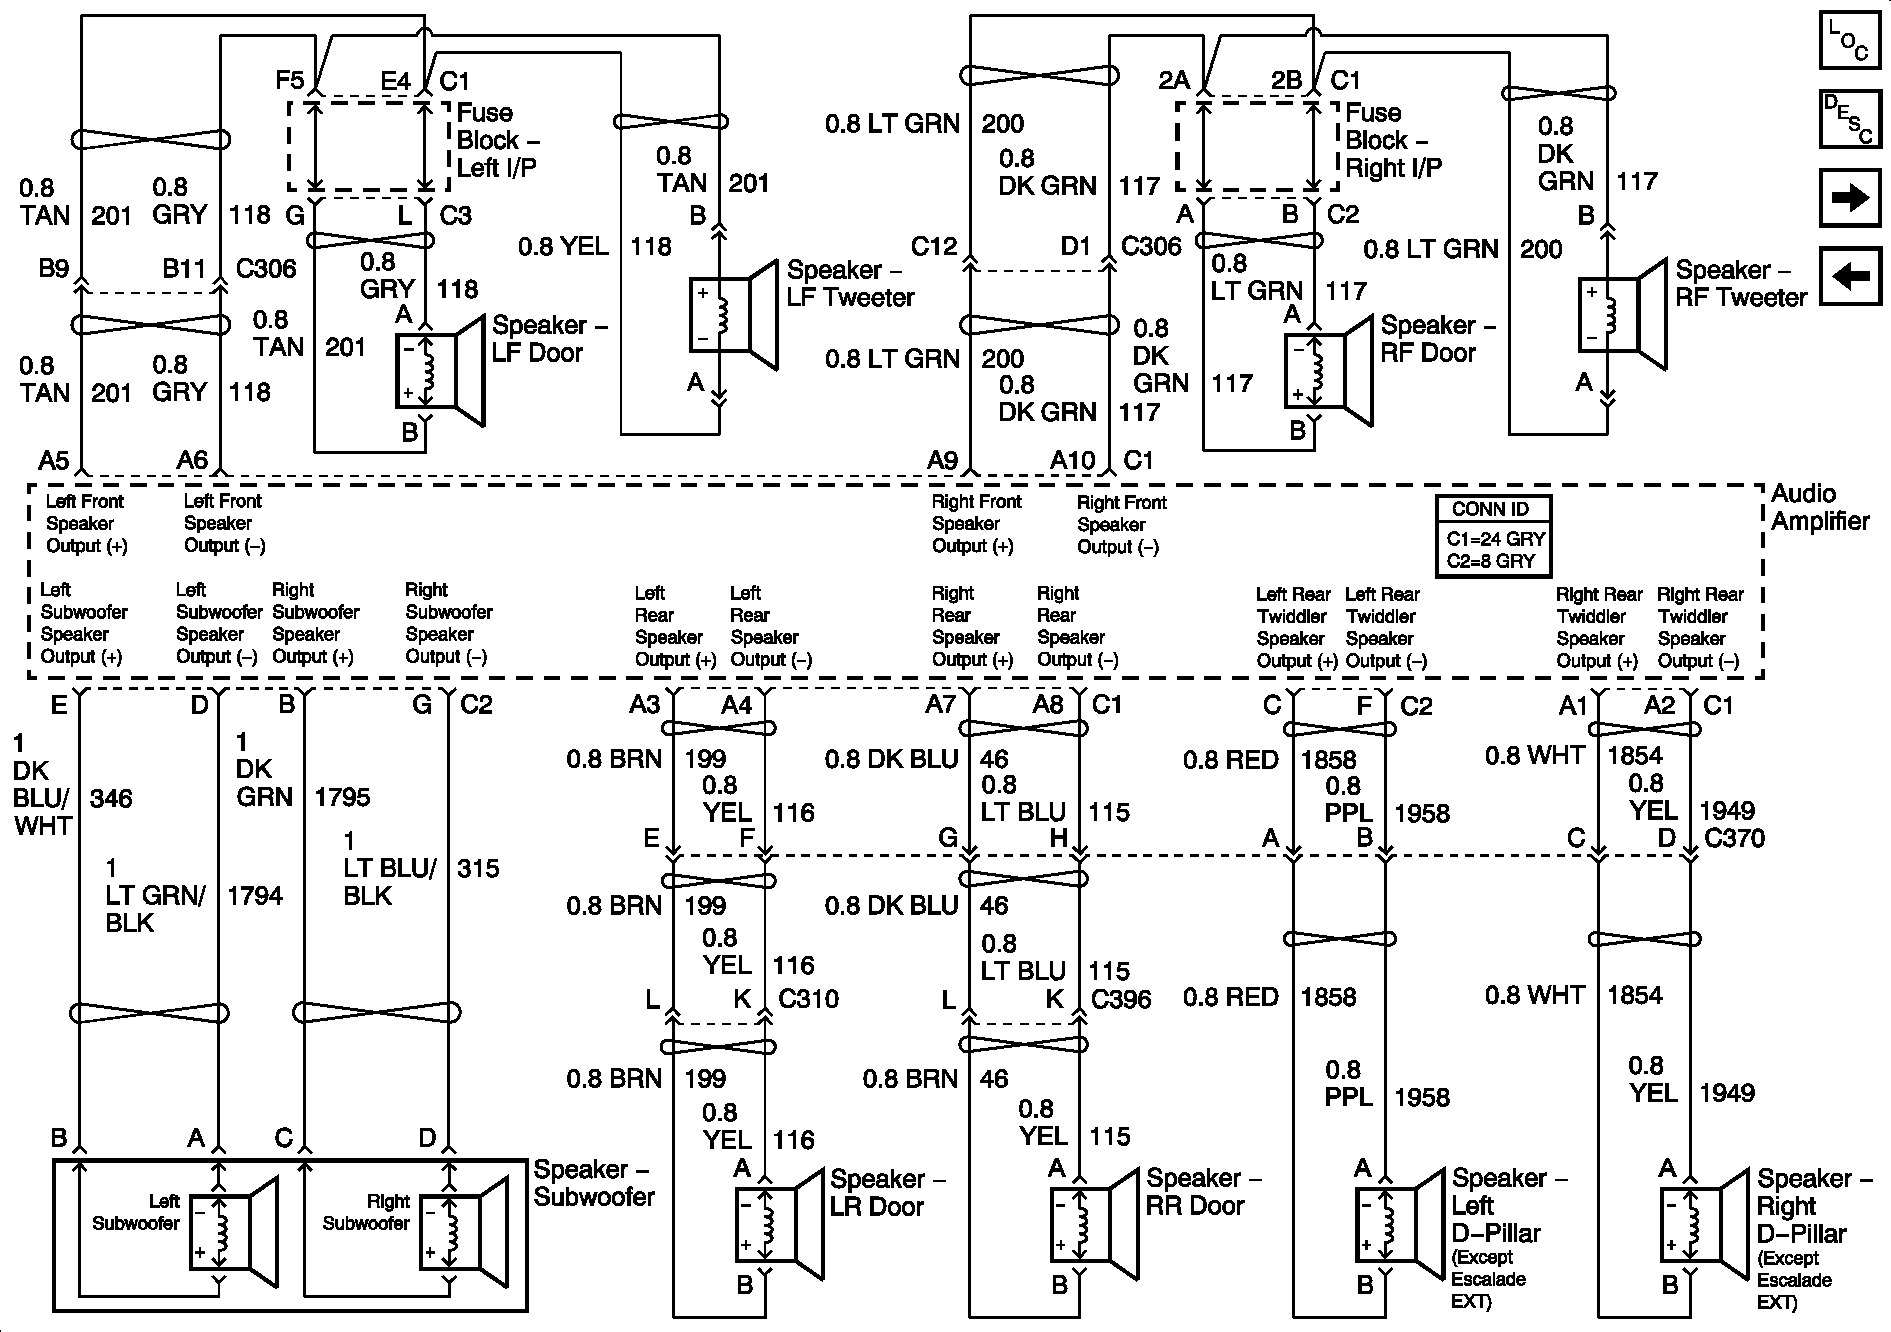 03 Chevy Silverado Radio Wiring Diagram from i2.wp.com